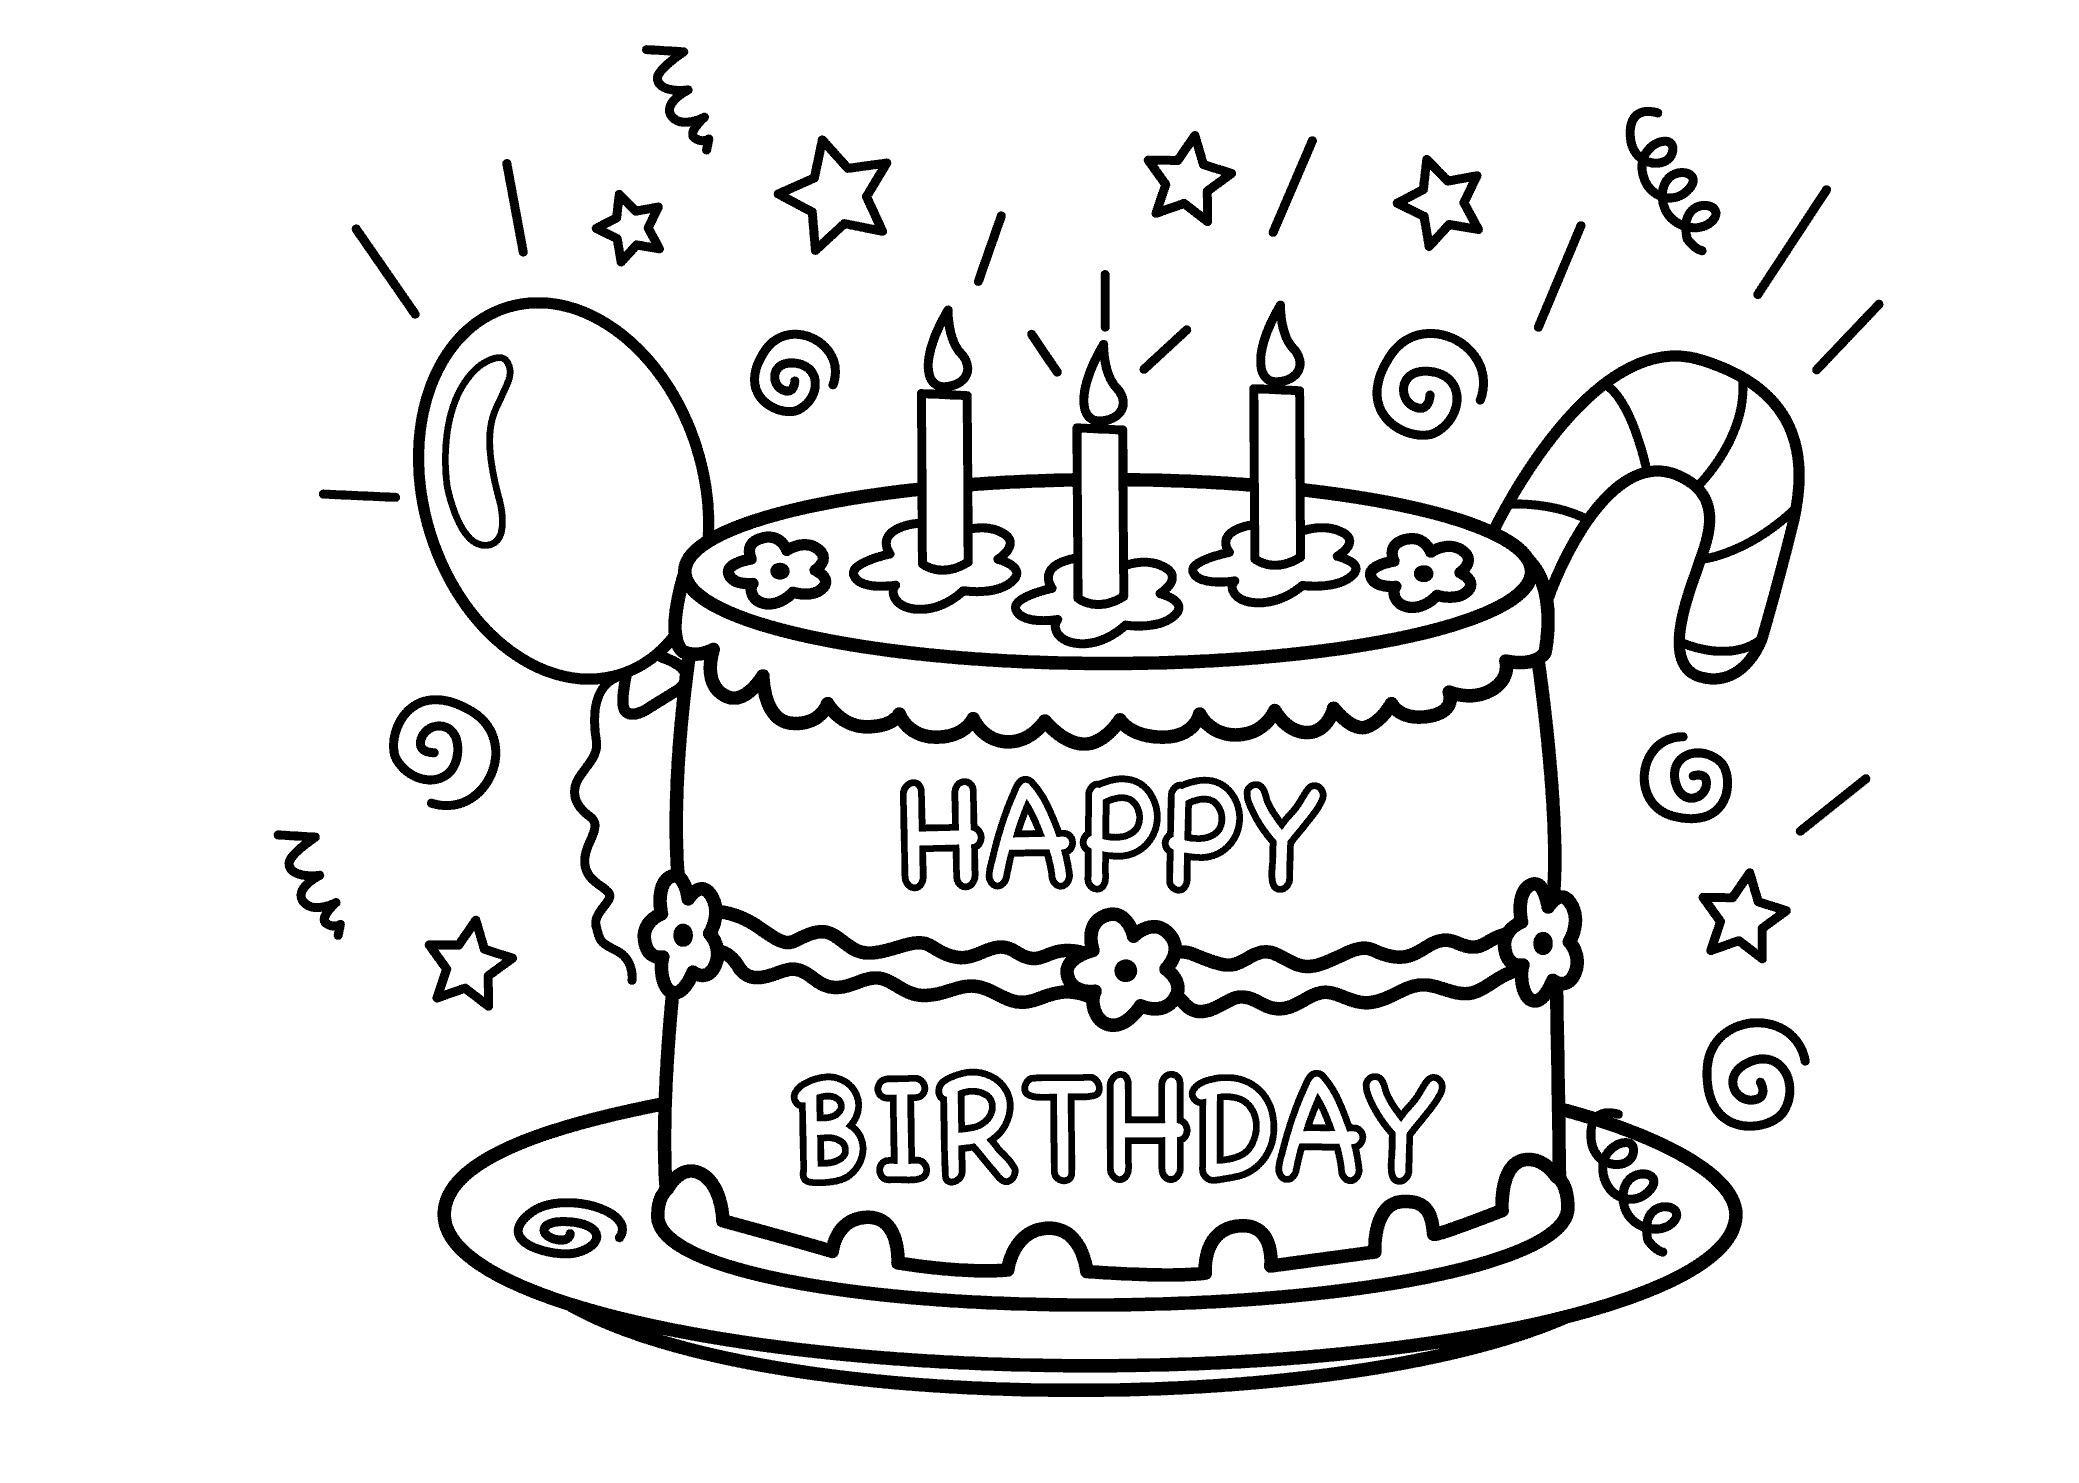 cake coloring image unicorn cake coloring pages transparent cartoons cute cake image coloring